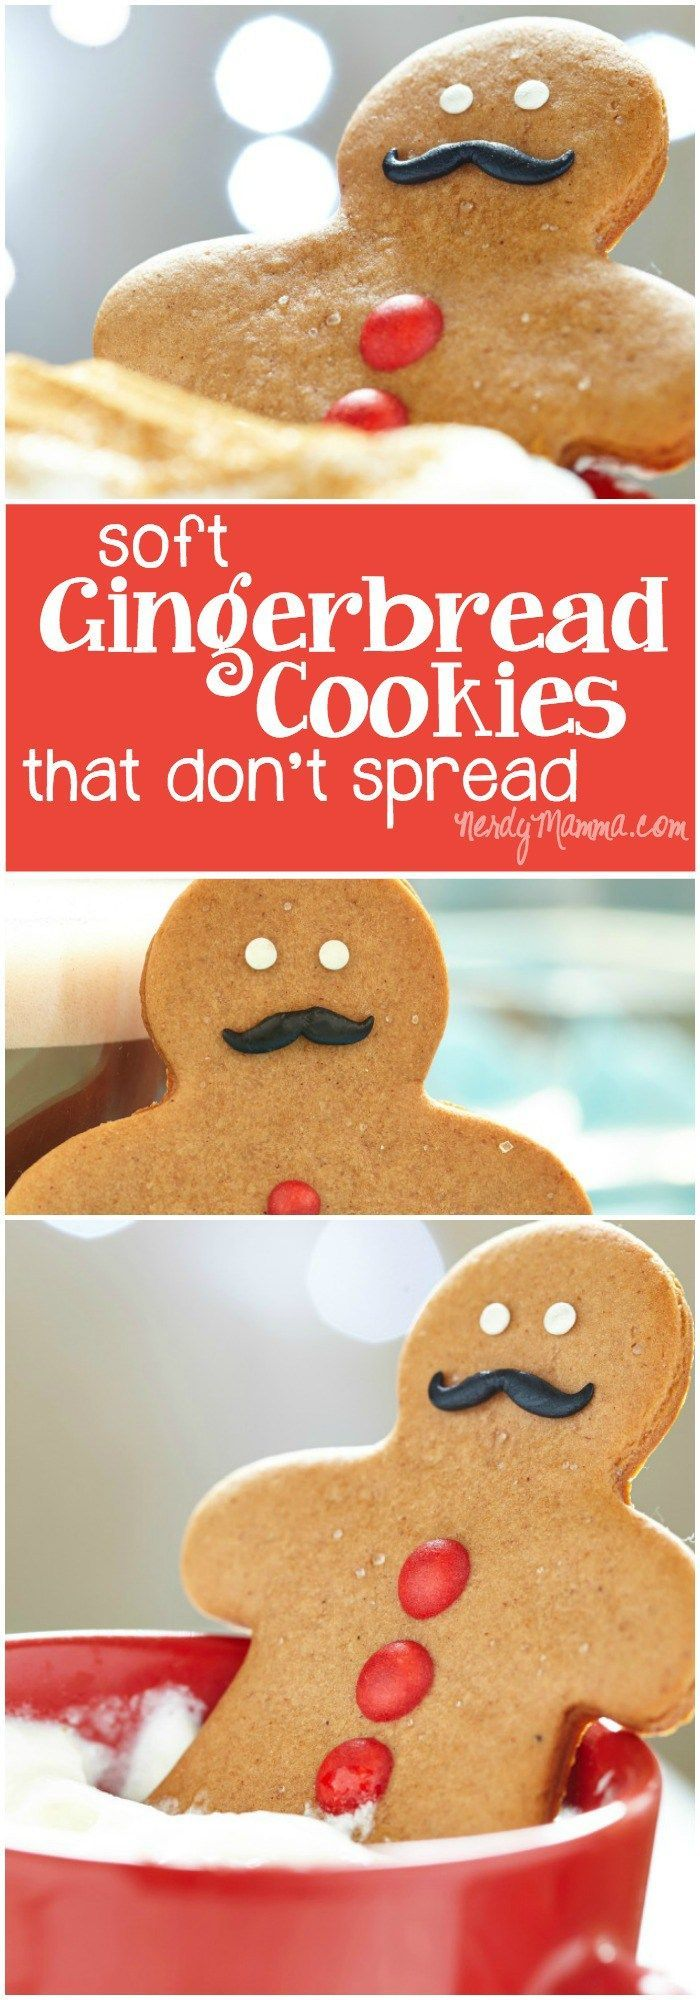 These gingerbread cookies are perfect for making